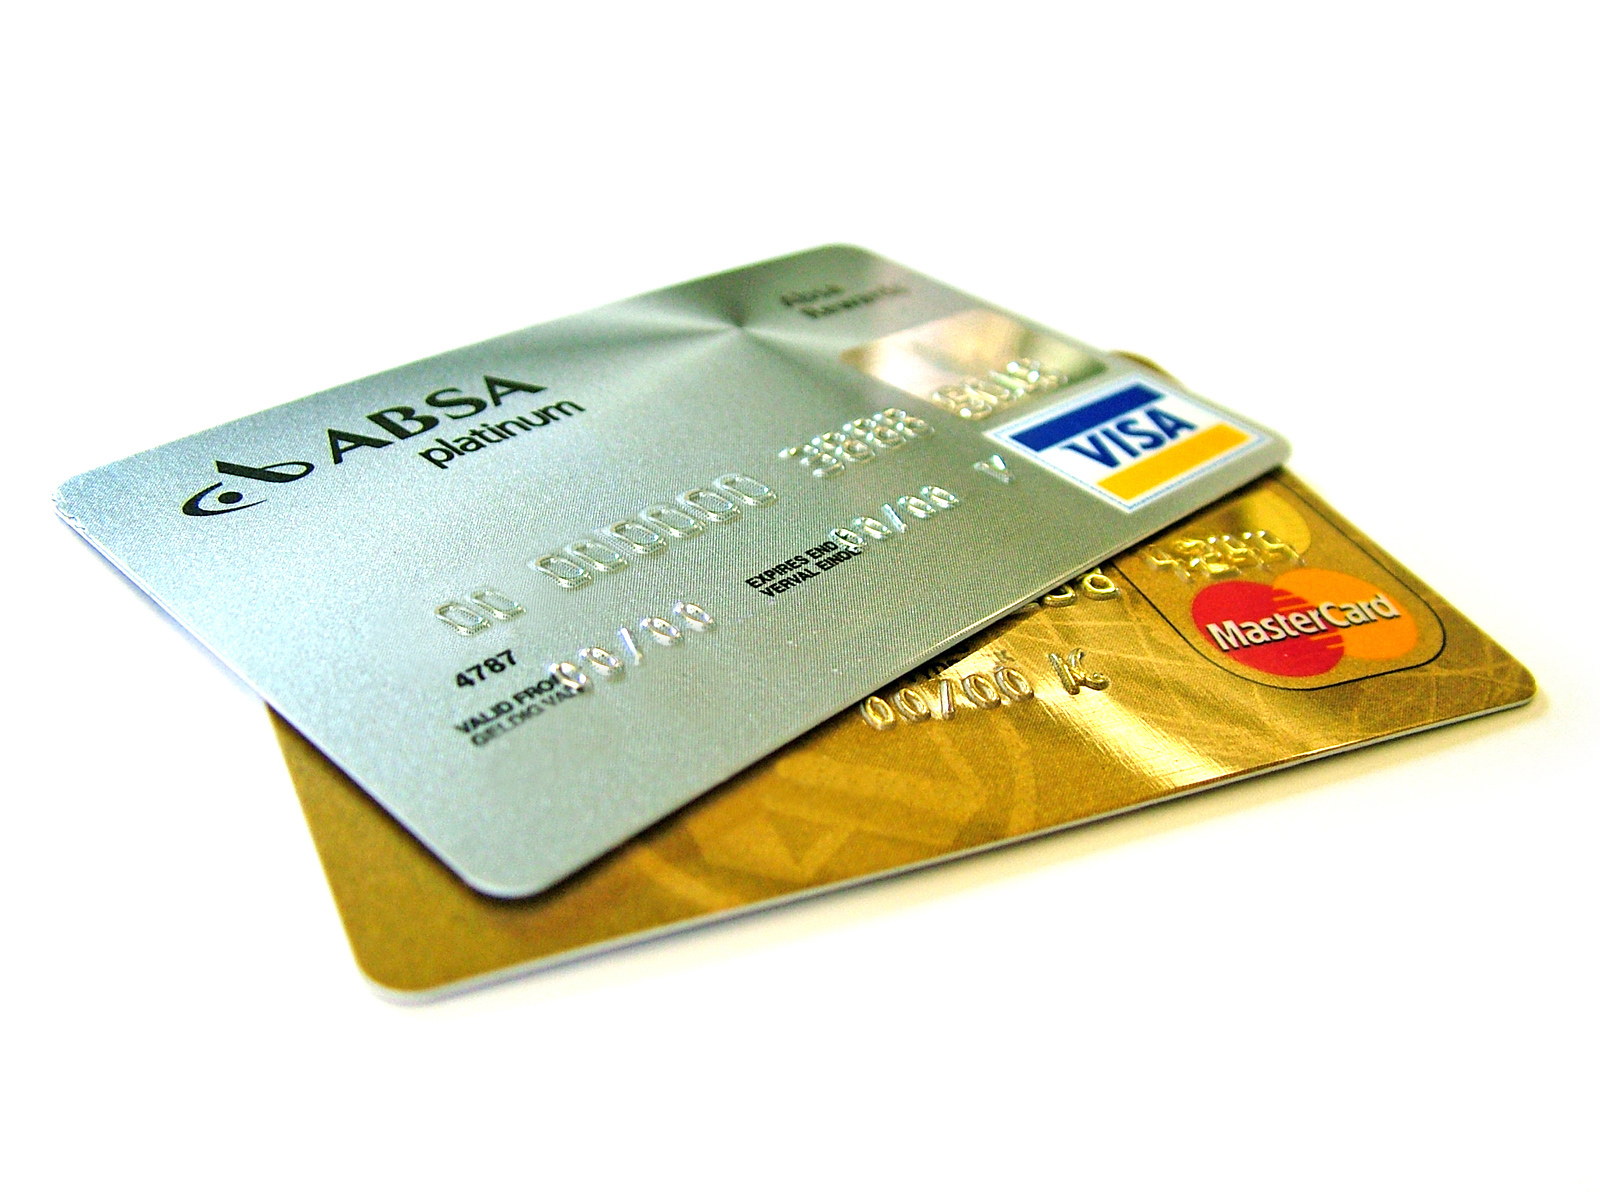 OPINION It's time to simplify the card payment process and